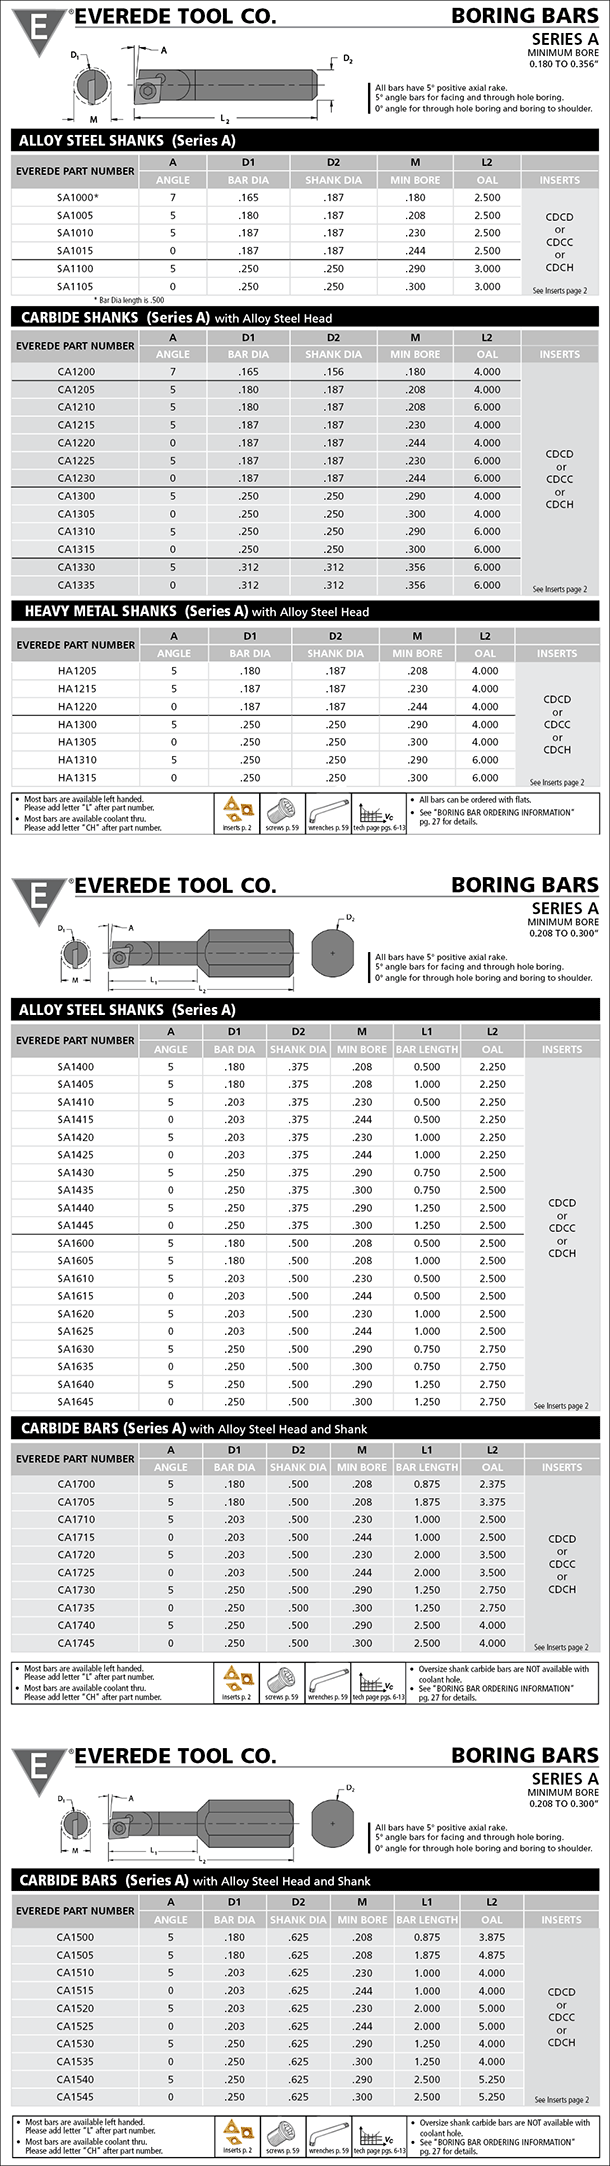 2014 Everede Catalog Series A Boring Bars